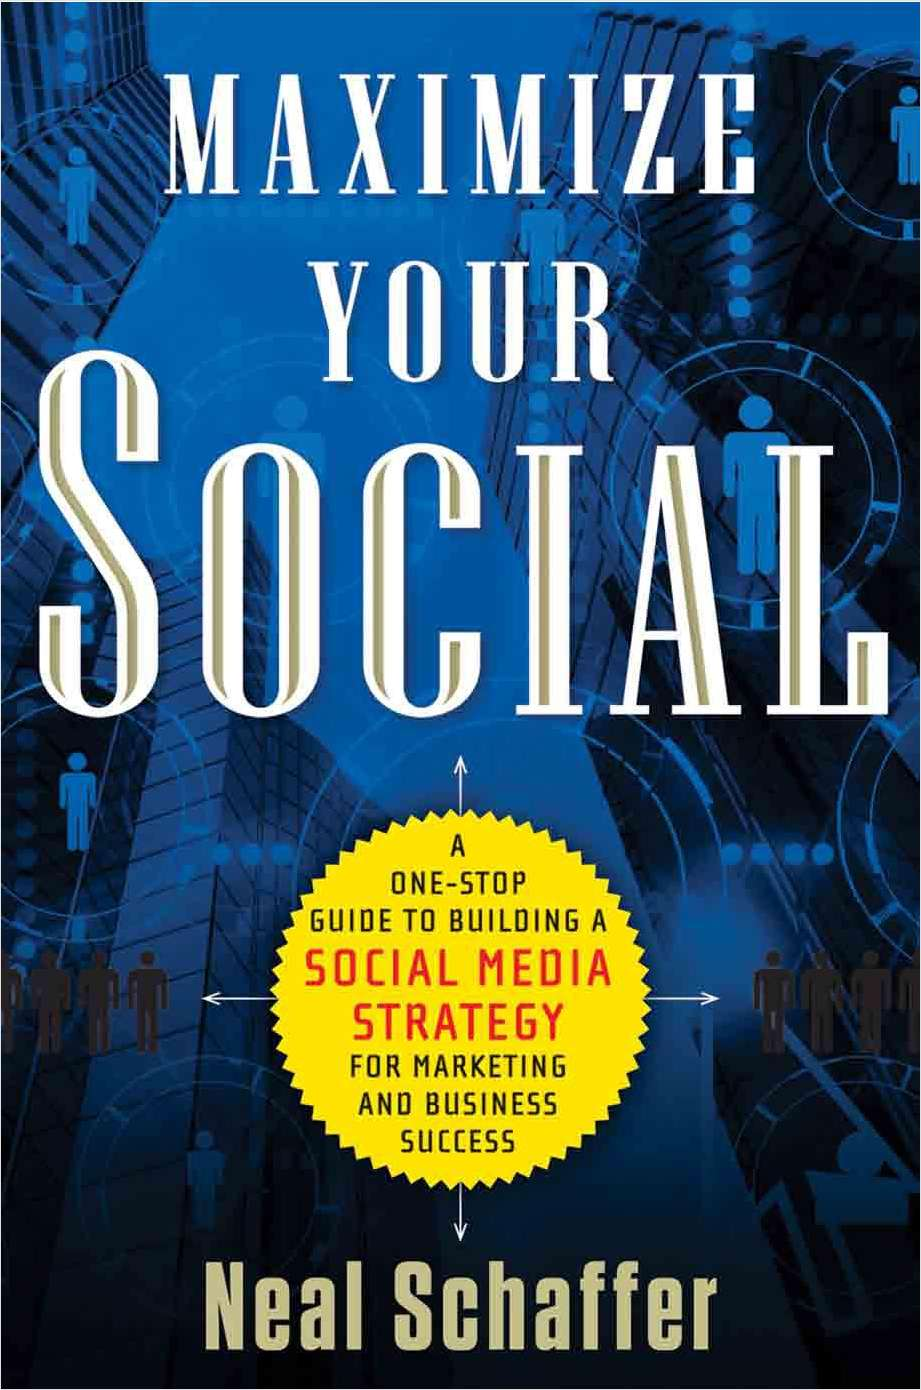 Maximize Your Social: A One-Stop Guide to Building a Social Media Strategy for Marketing and Business Success-- Complimentary Excerpt